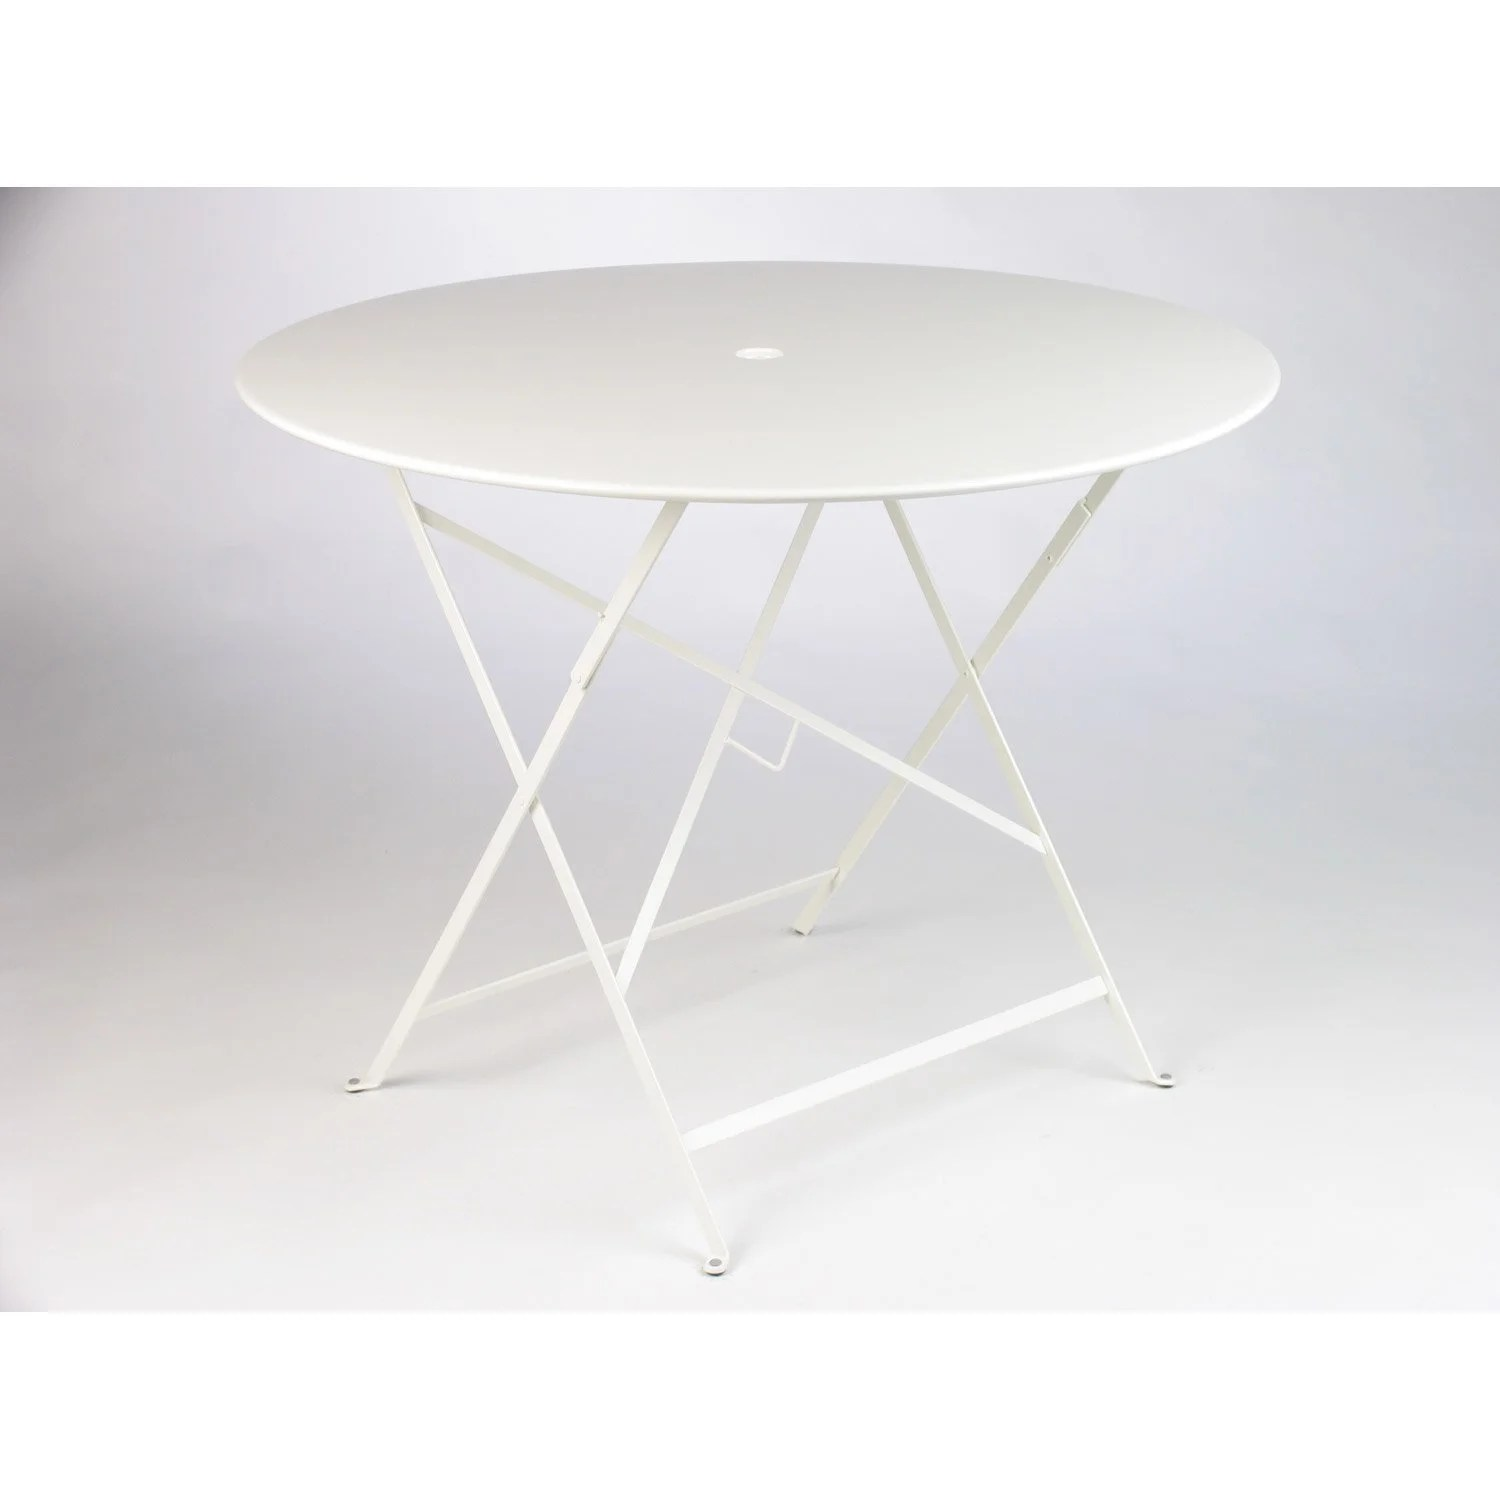 Table Terrasse Blanche | Table Basse Ovale Blanche Idees De Dcoration